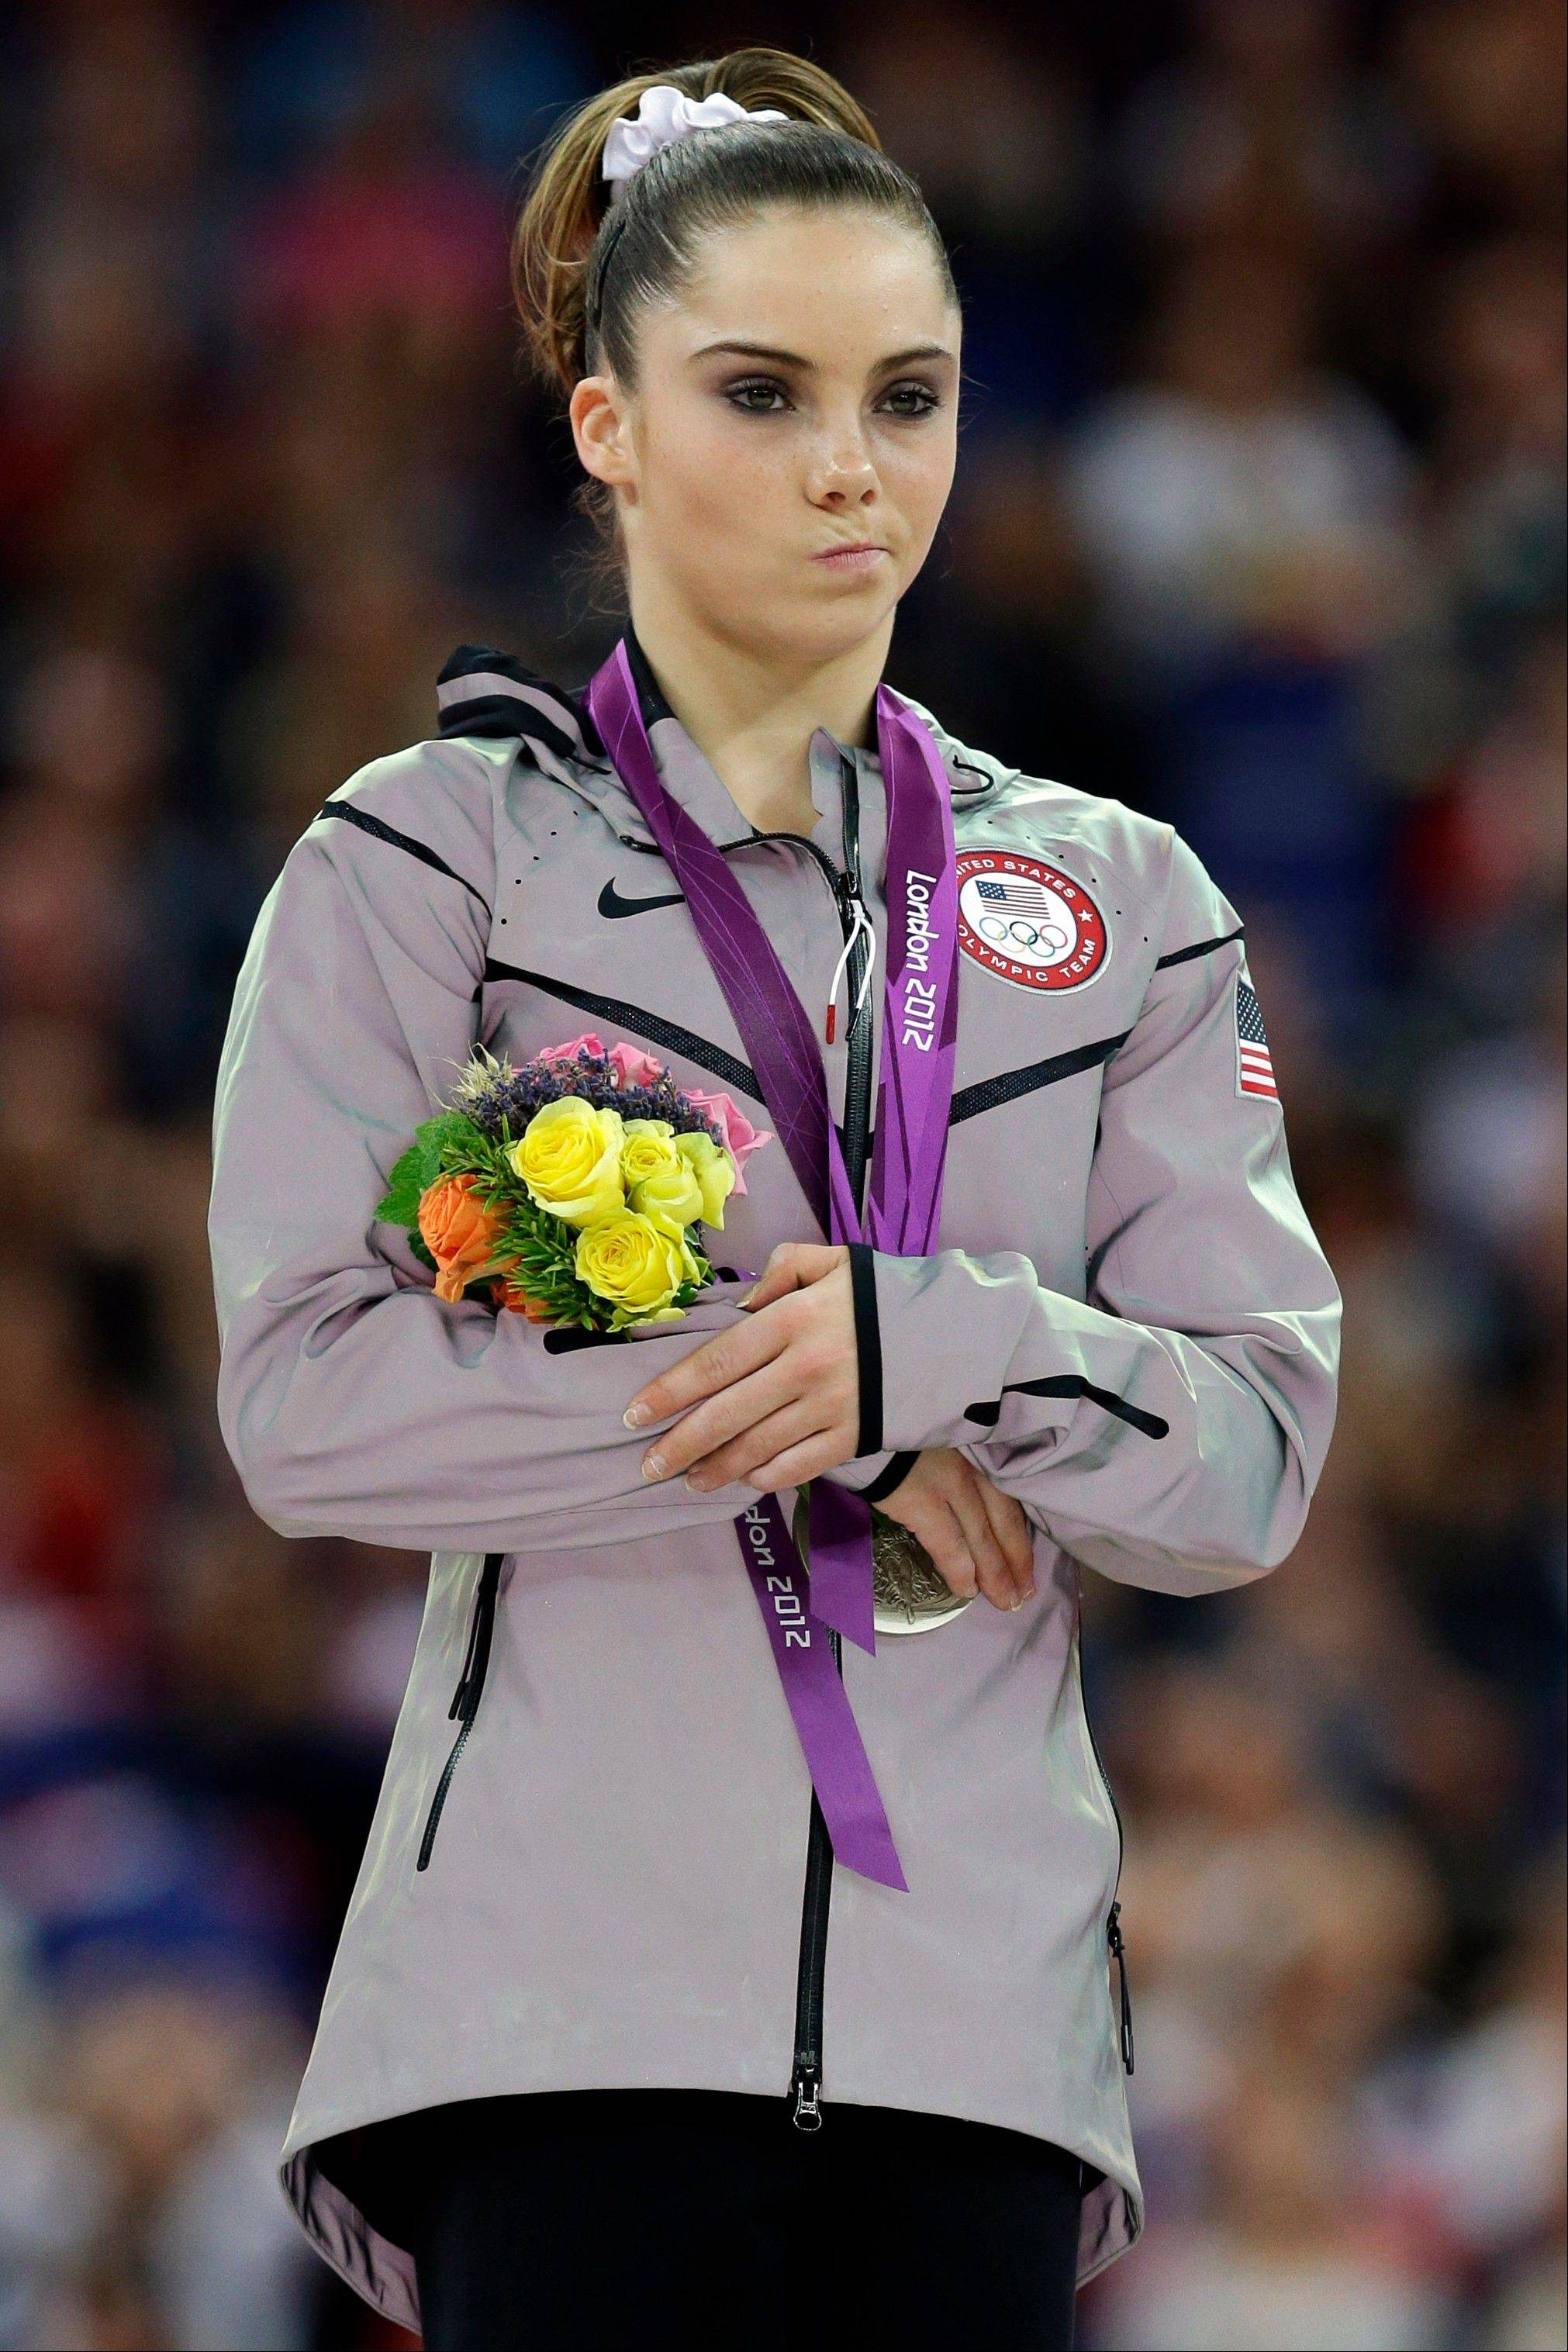 Silver medalist McKayla Maroney may have captured the Best Sports Smirk of 2012, but Bob Frisk collected the Best Sports Quotes from the past year for today's column.